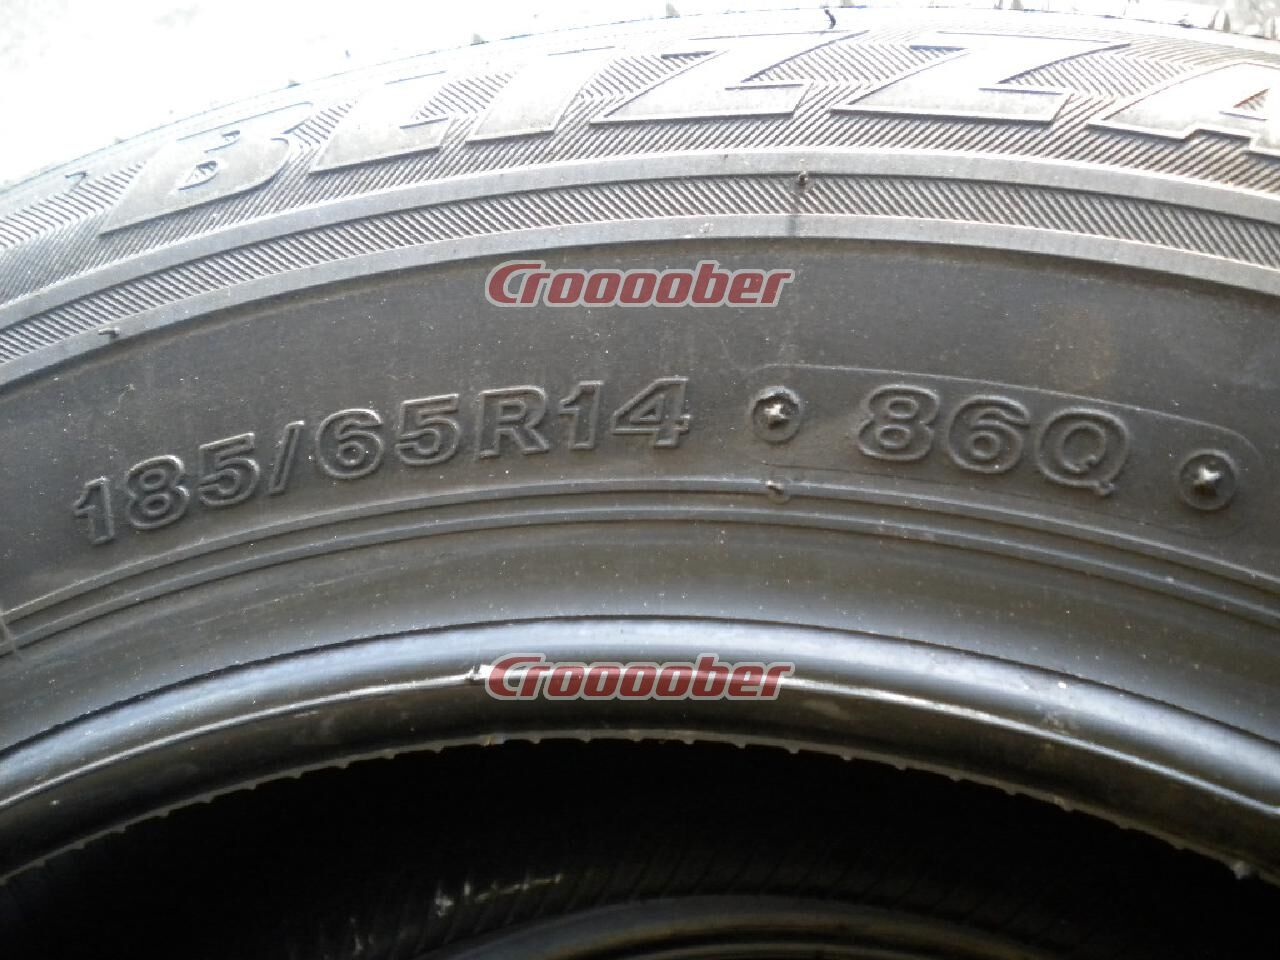 BRIDGESTONE REVO GZ | 14 Inch Studless Tire | Croooober